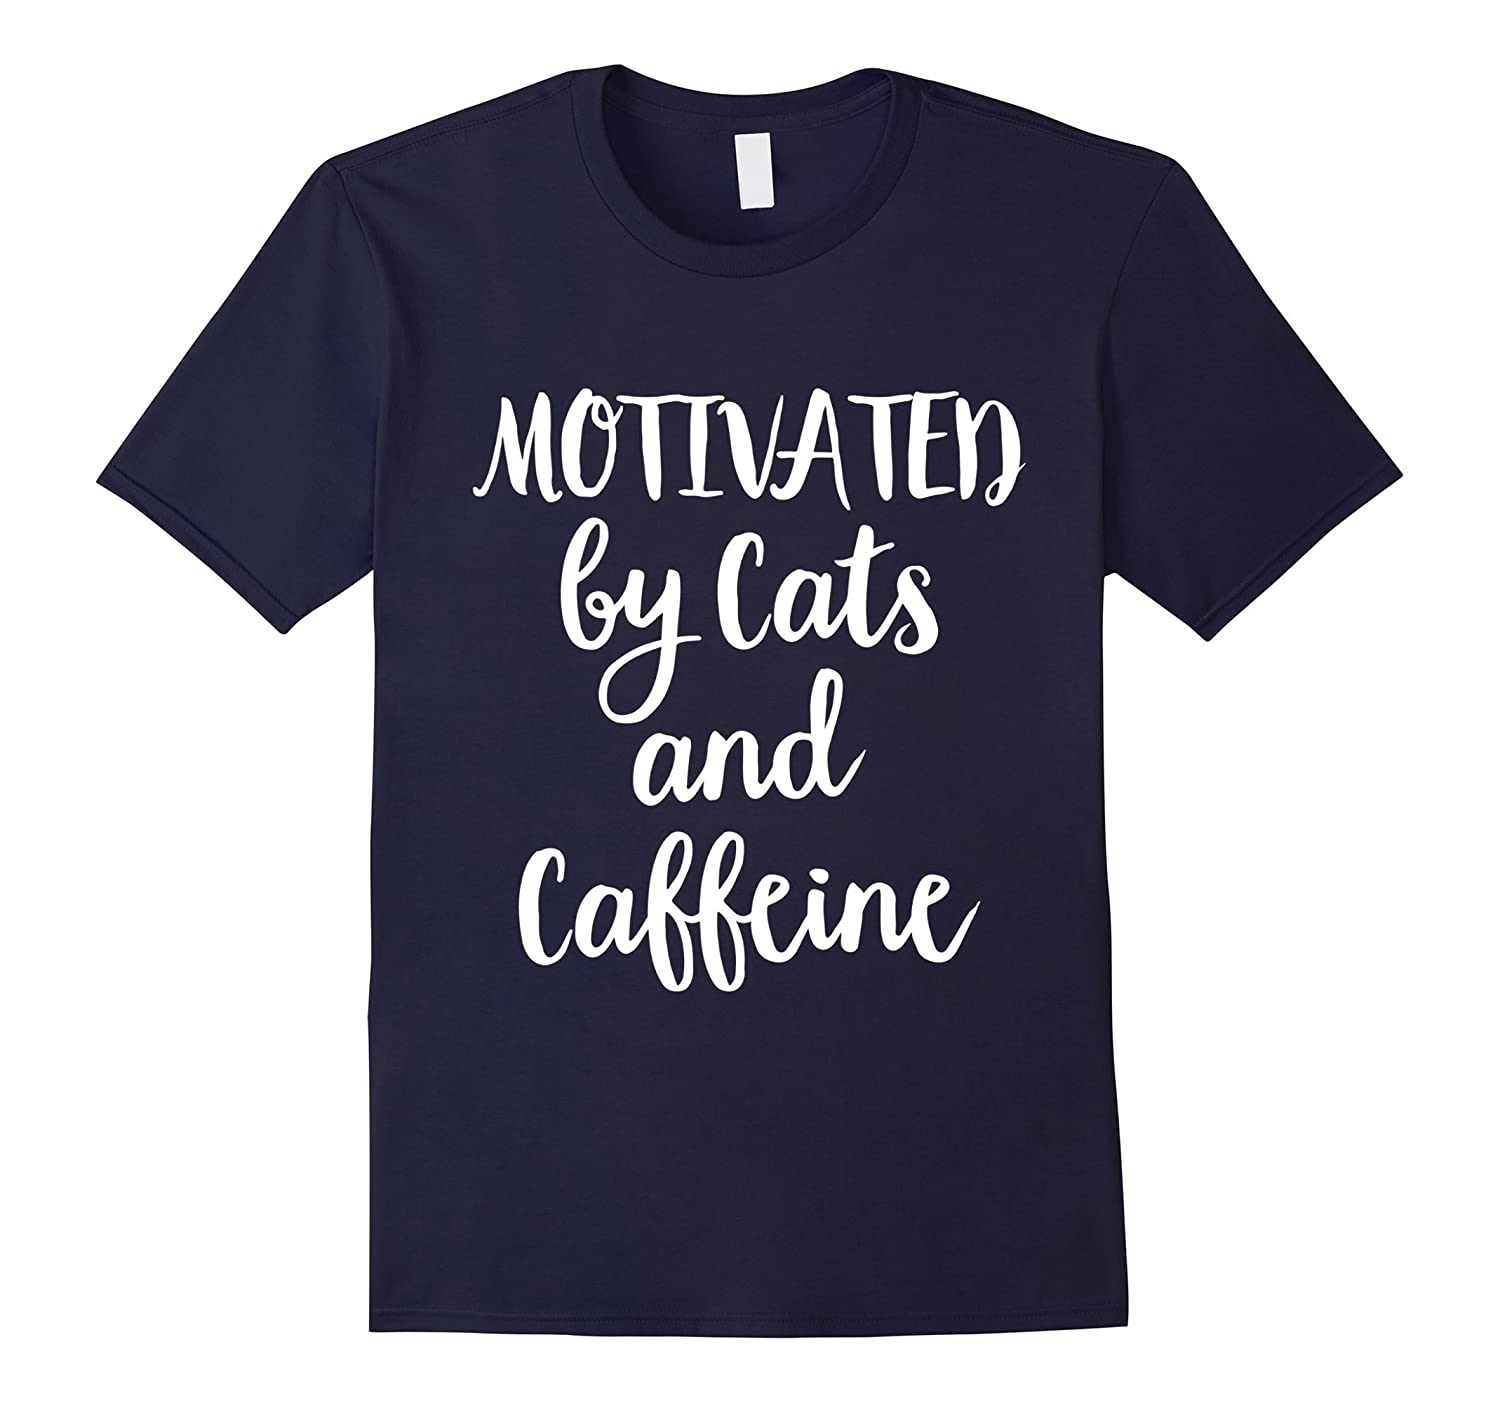 Motivated by cats and caffeine T-shirt, Love Cat Shirt-FL